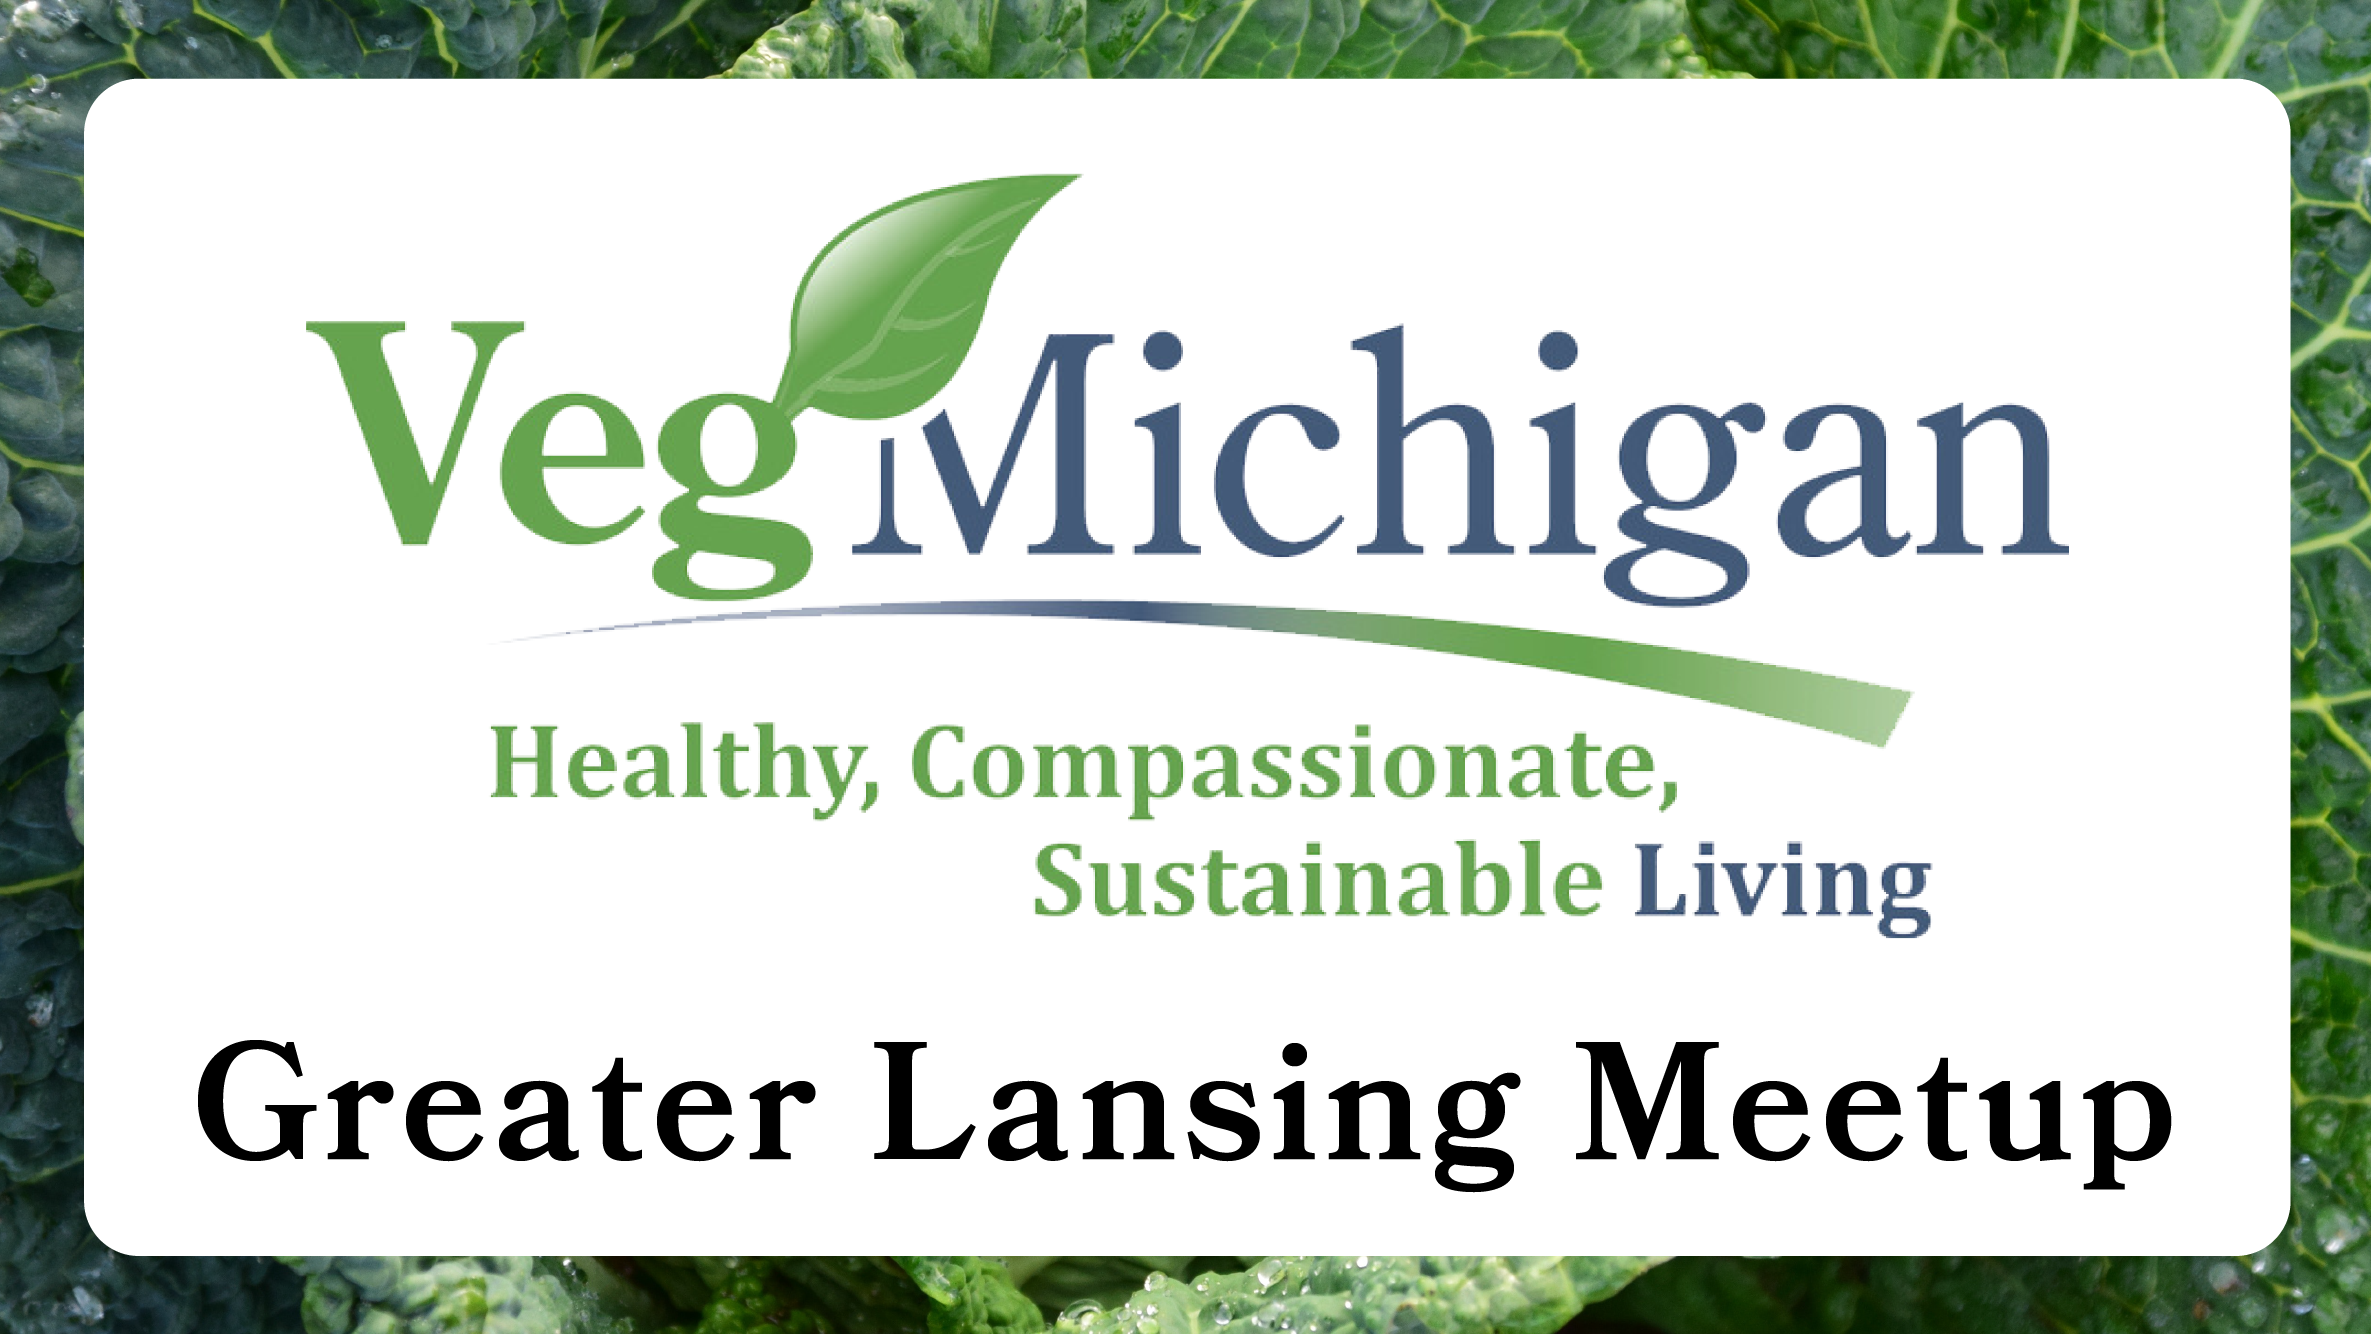 VegMichigan Greater Lansing Meetup